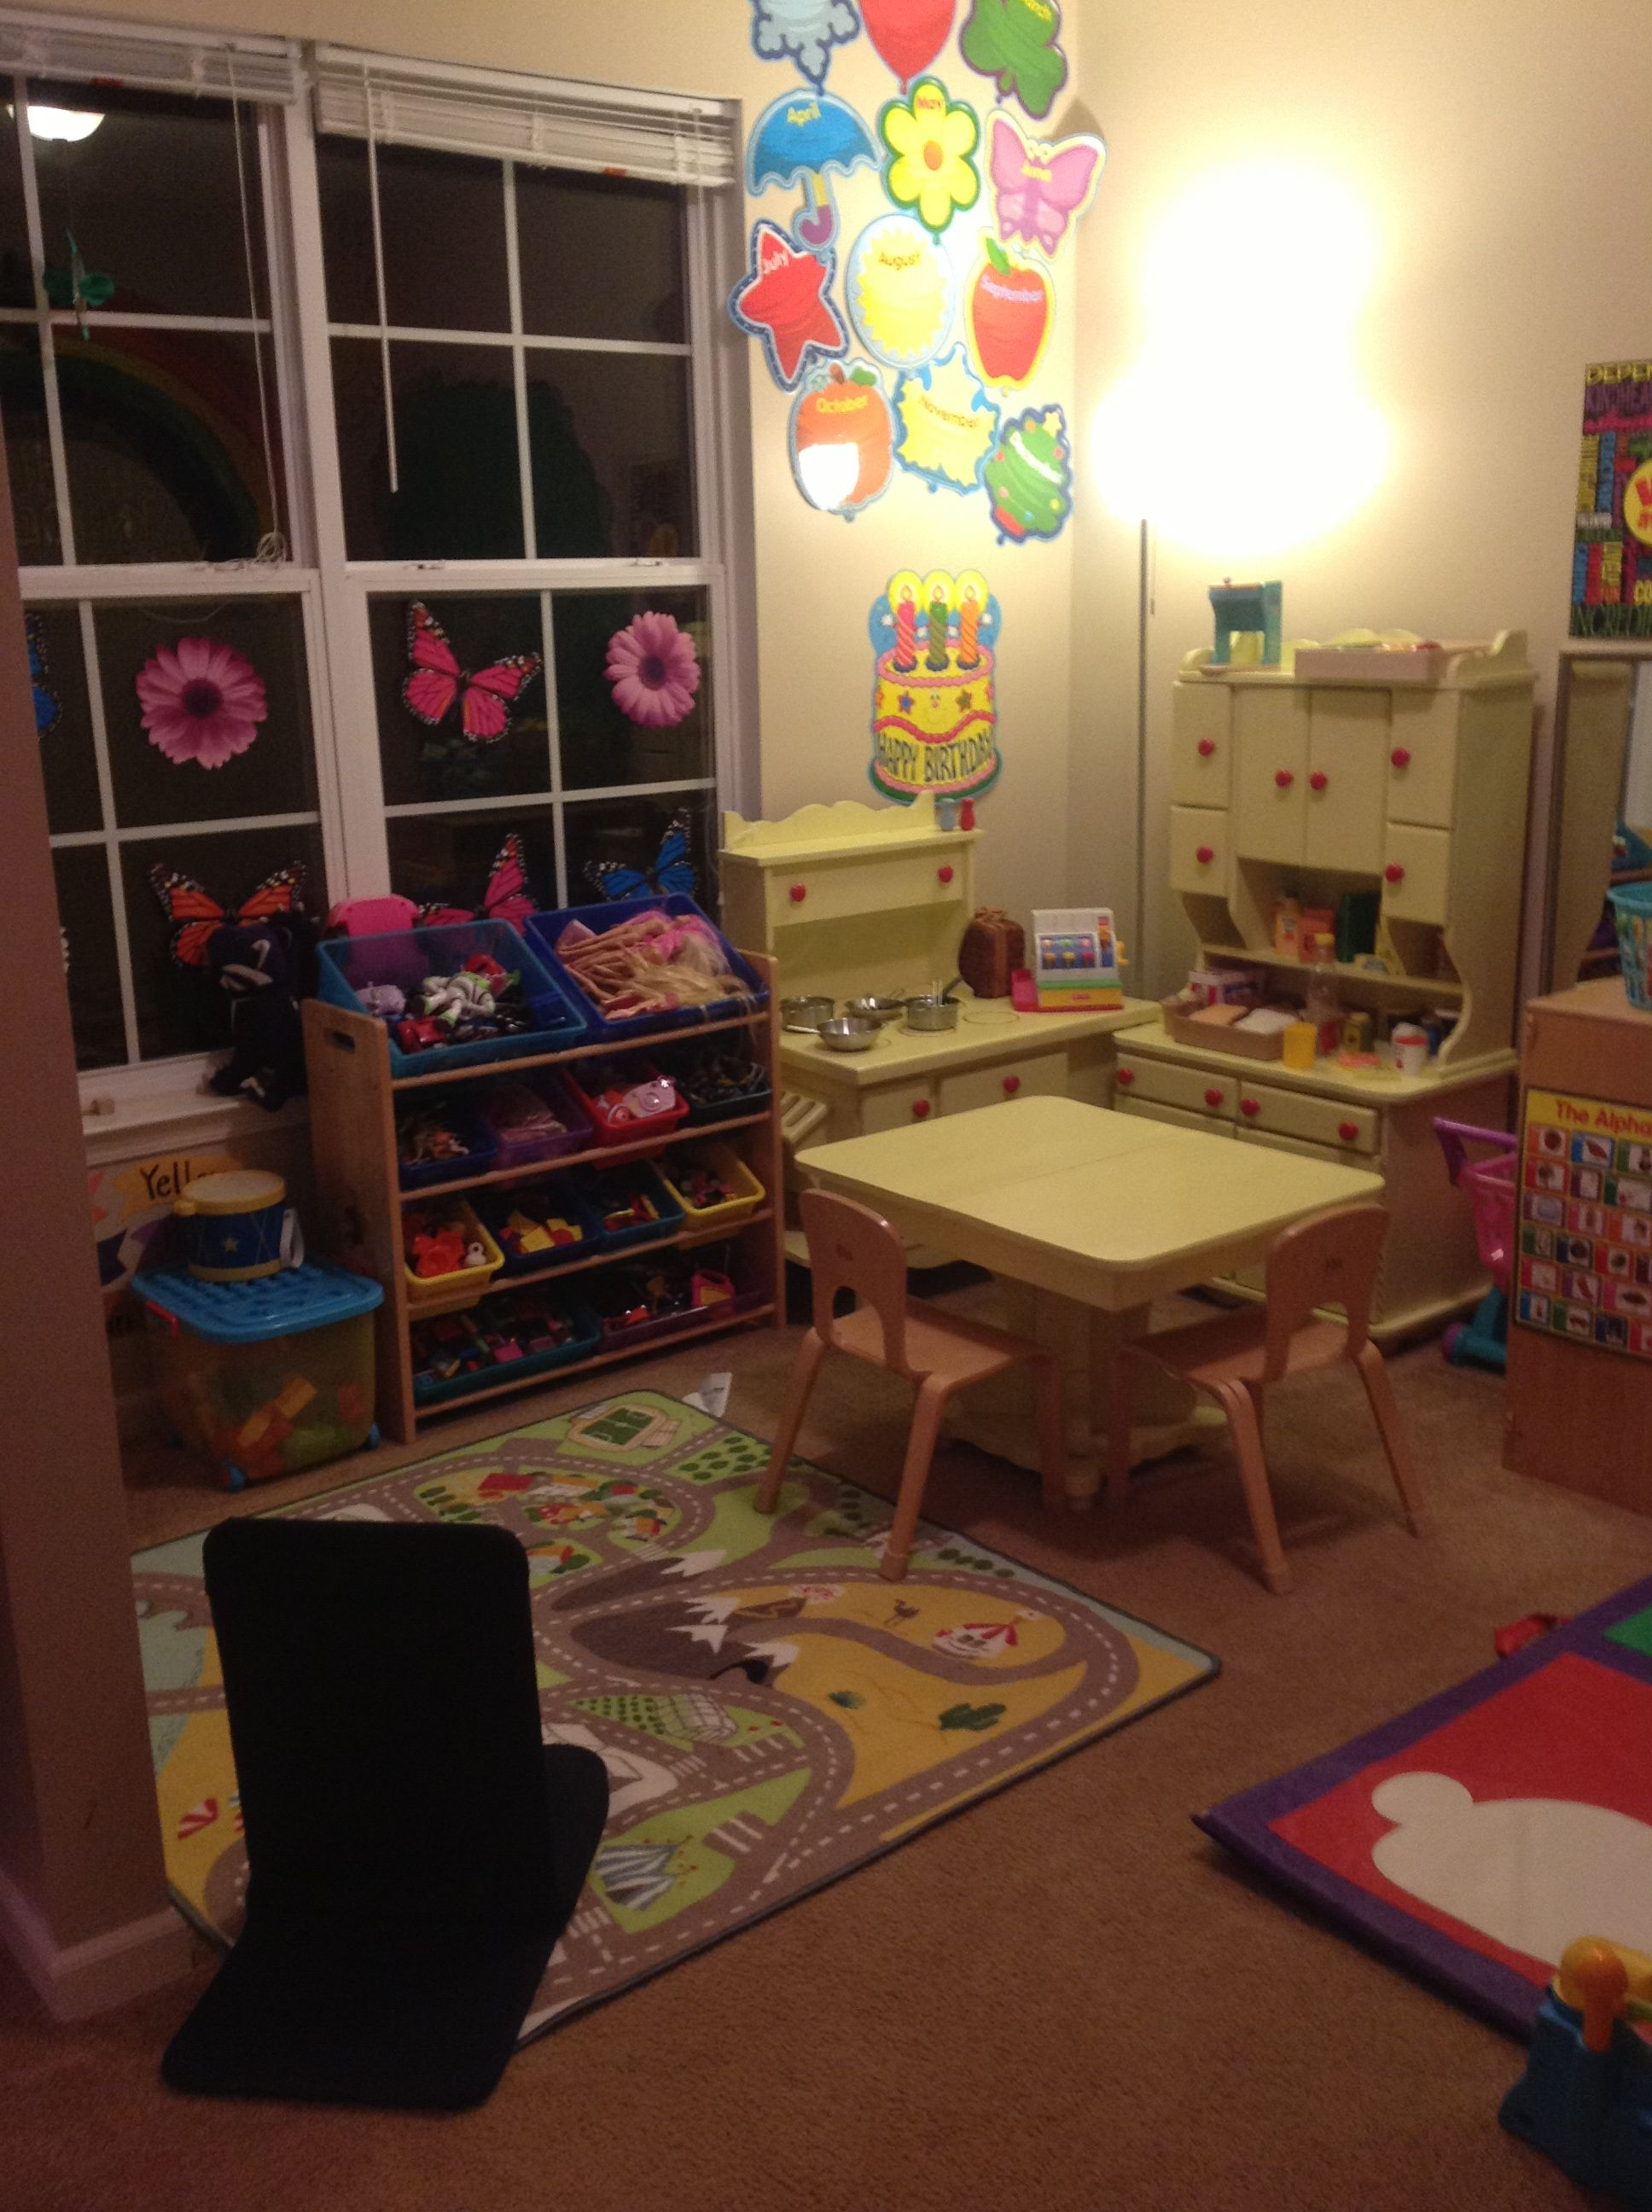 Small Area Home Childcare Setup. Let's See Some Photos Of Your Childcare Setting.